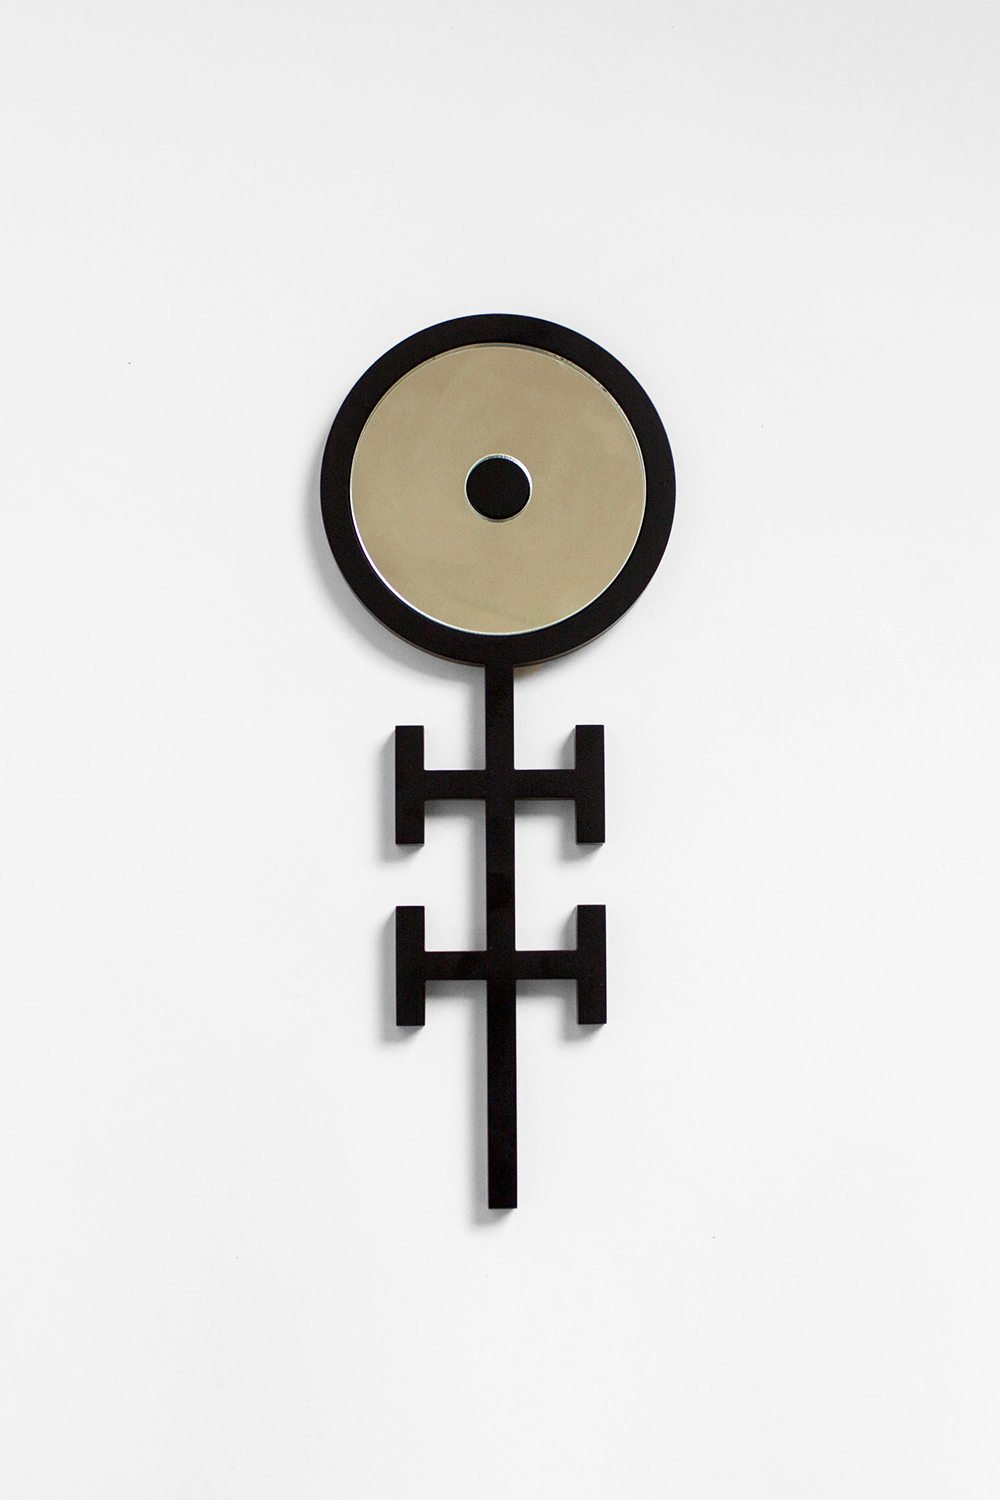 ANKH HAND MIRRORS, 2014 BLACK POWDER COATED STEEL  PDF  -  INQUIRE  +  MORE